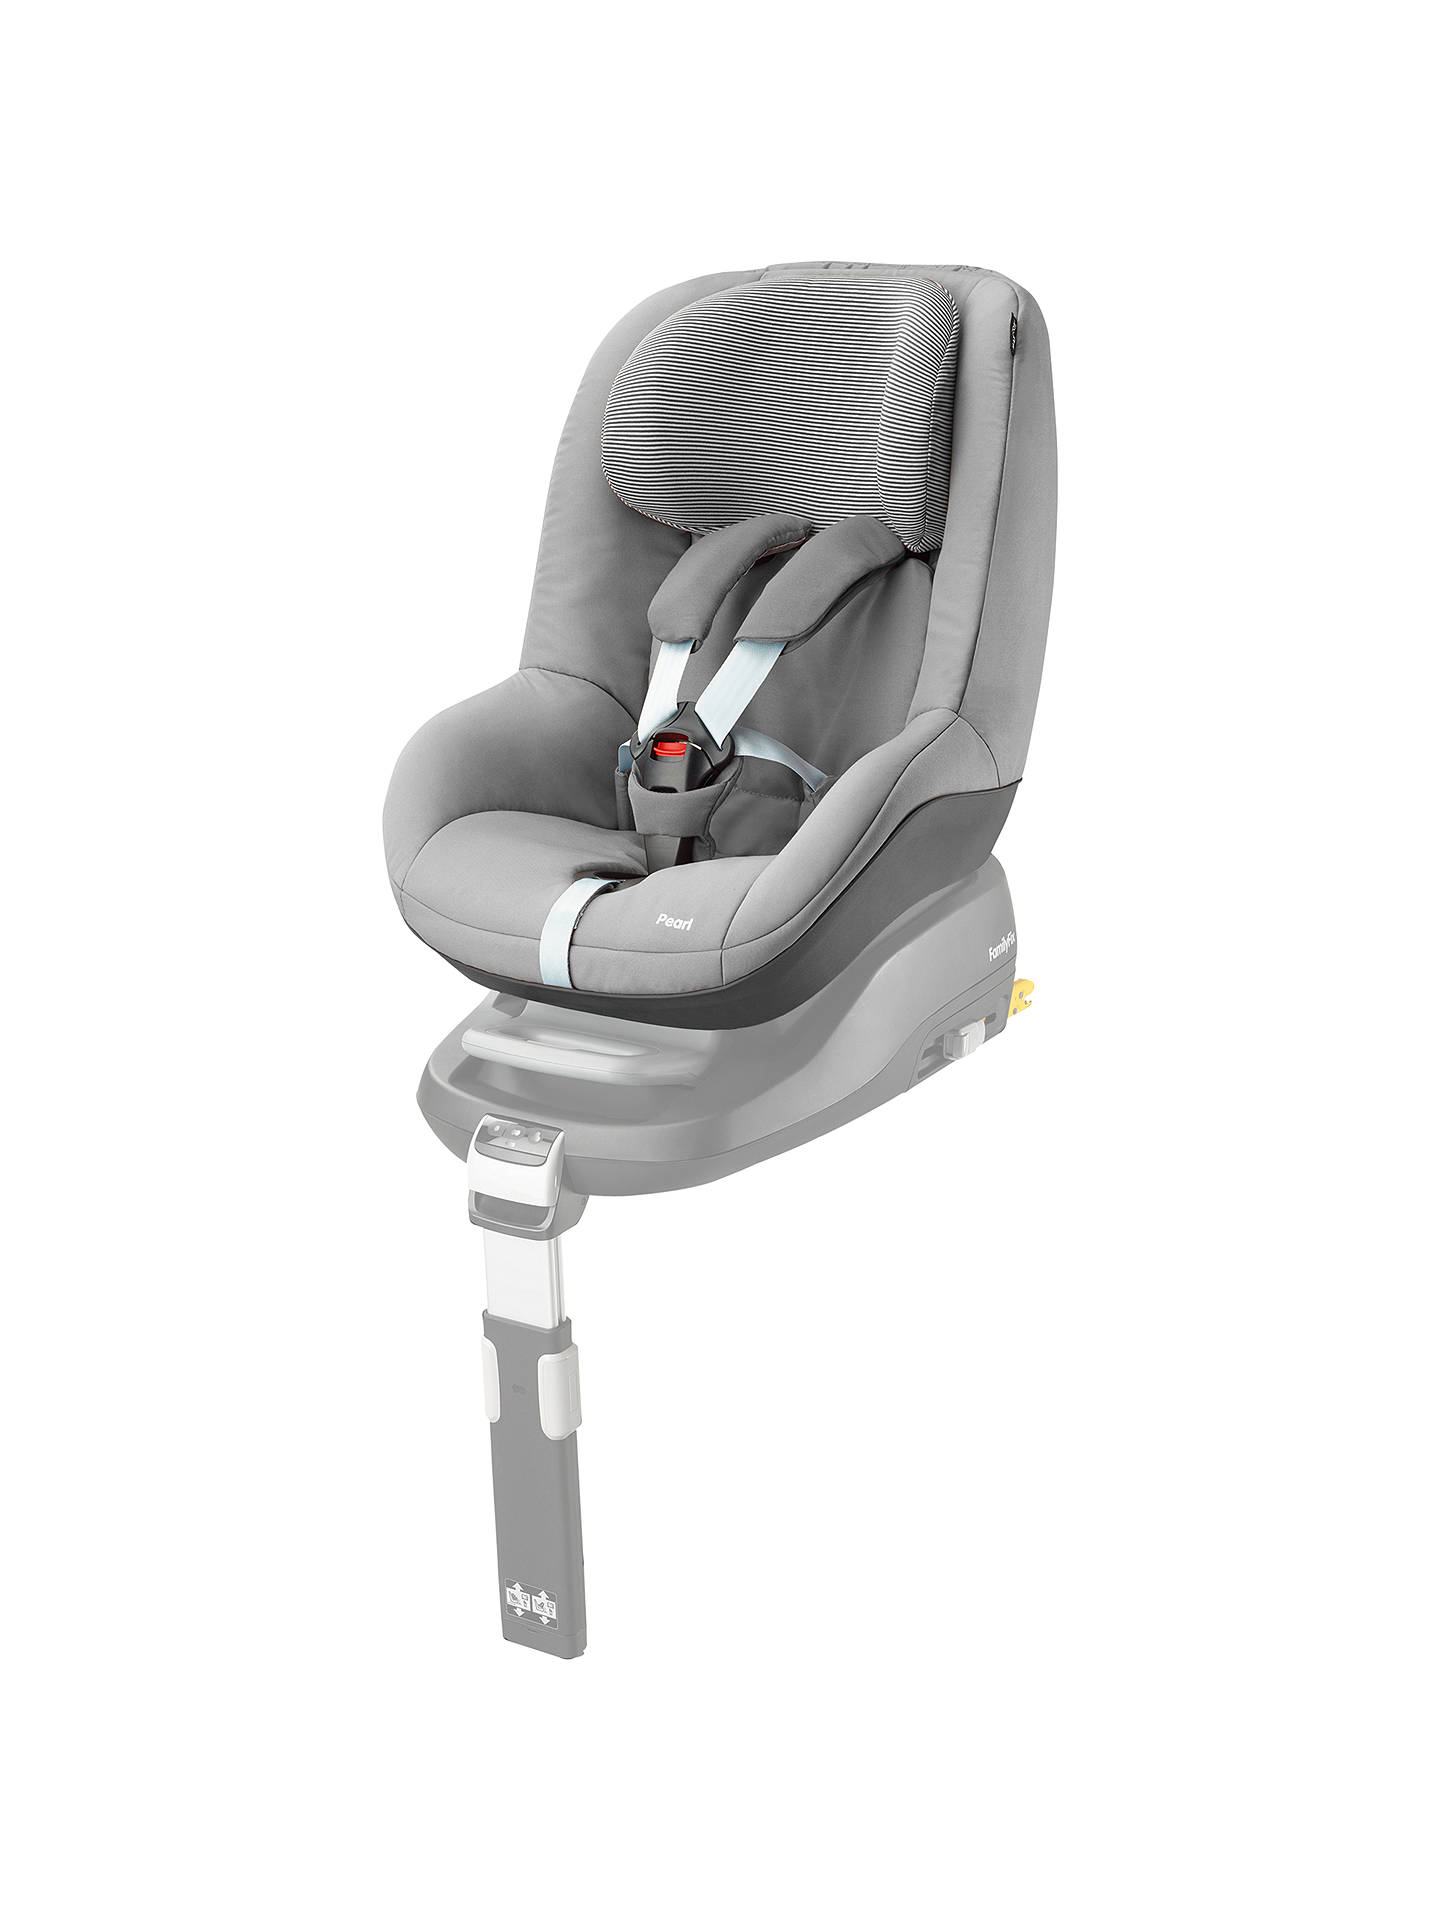 maxi cosi pearl group 1 car seat concrete grey at john. Black Bedroom Furniture Sets. Home Design Ideas